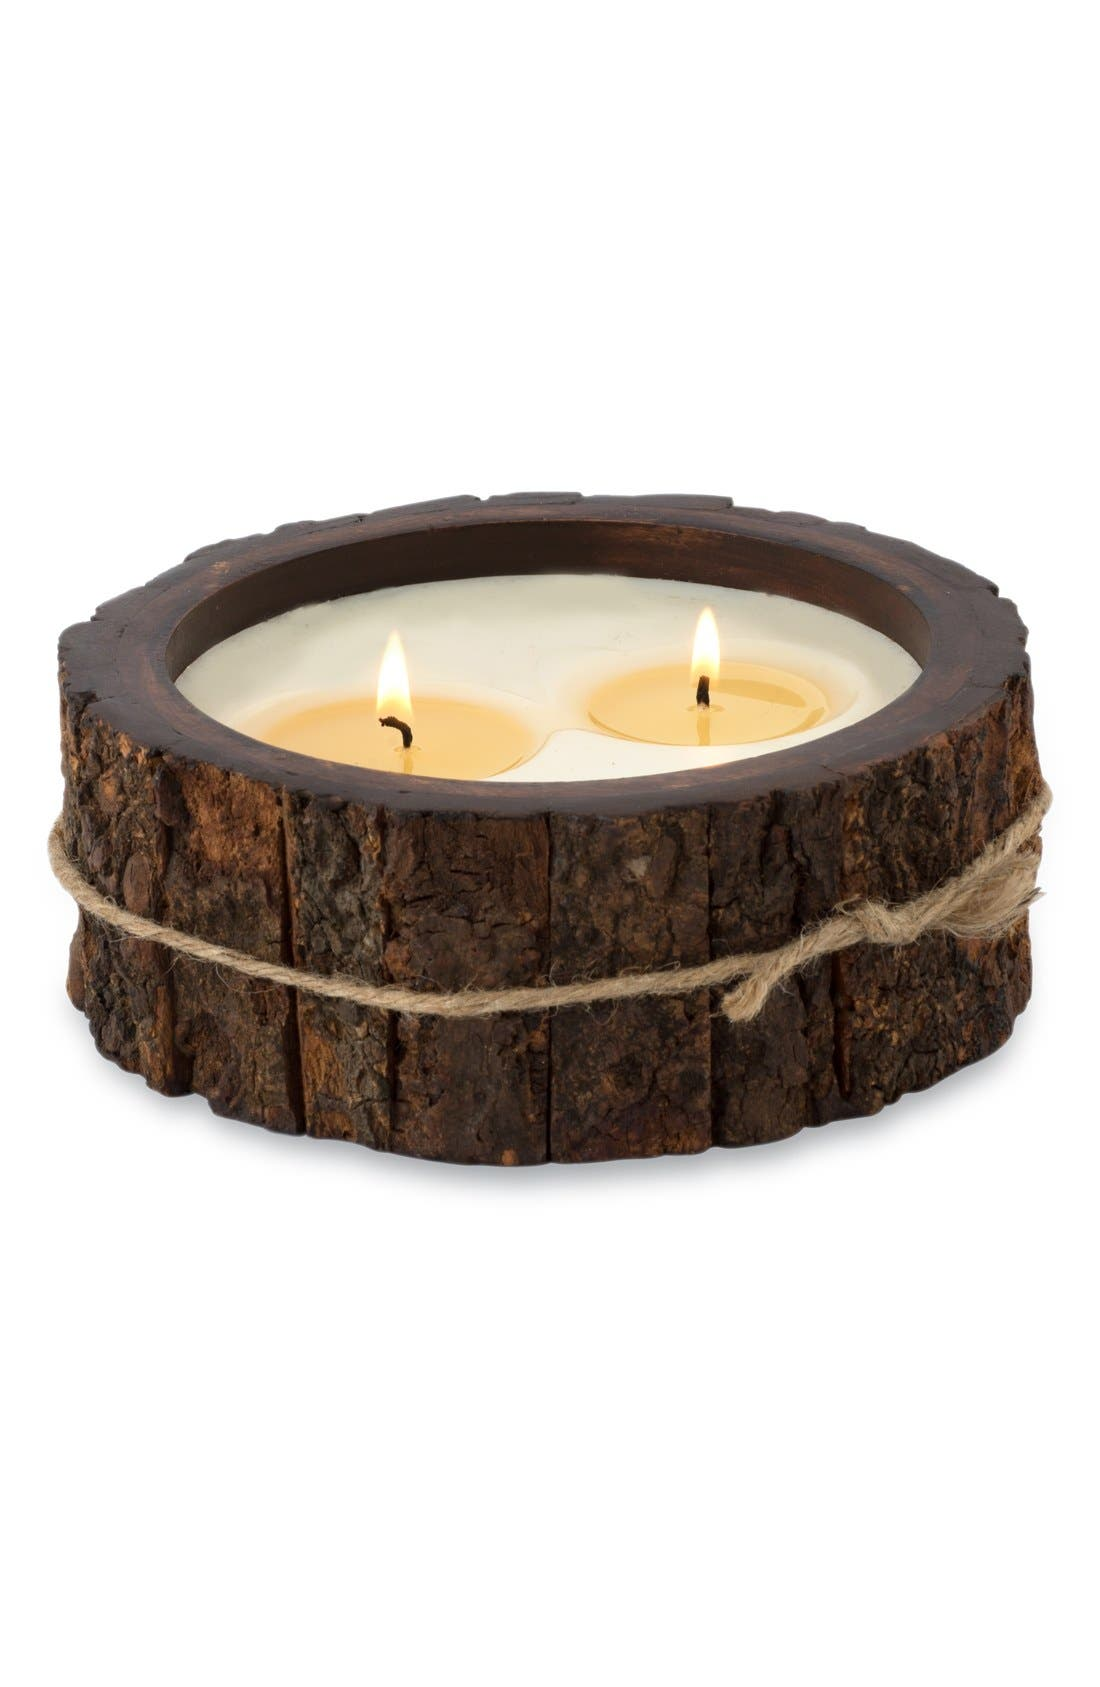 Main Image - Himalayan Trading Post Double Wick Tree Bark Candle